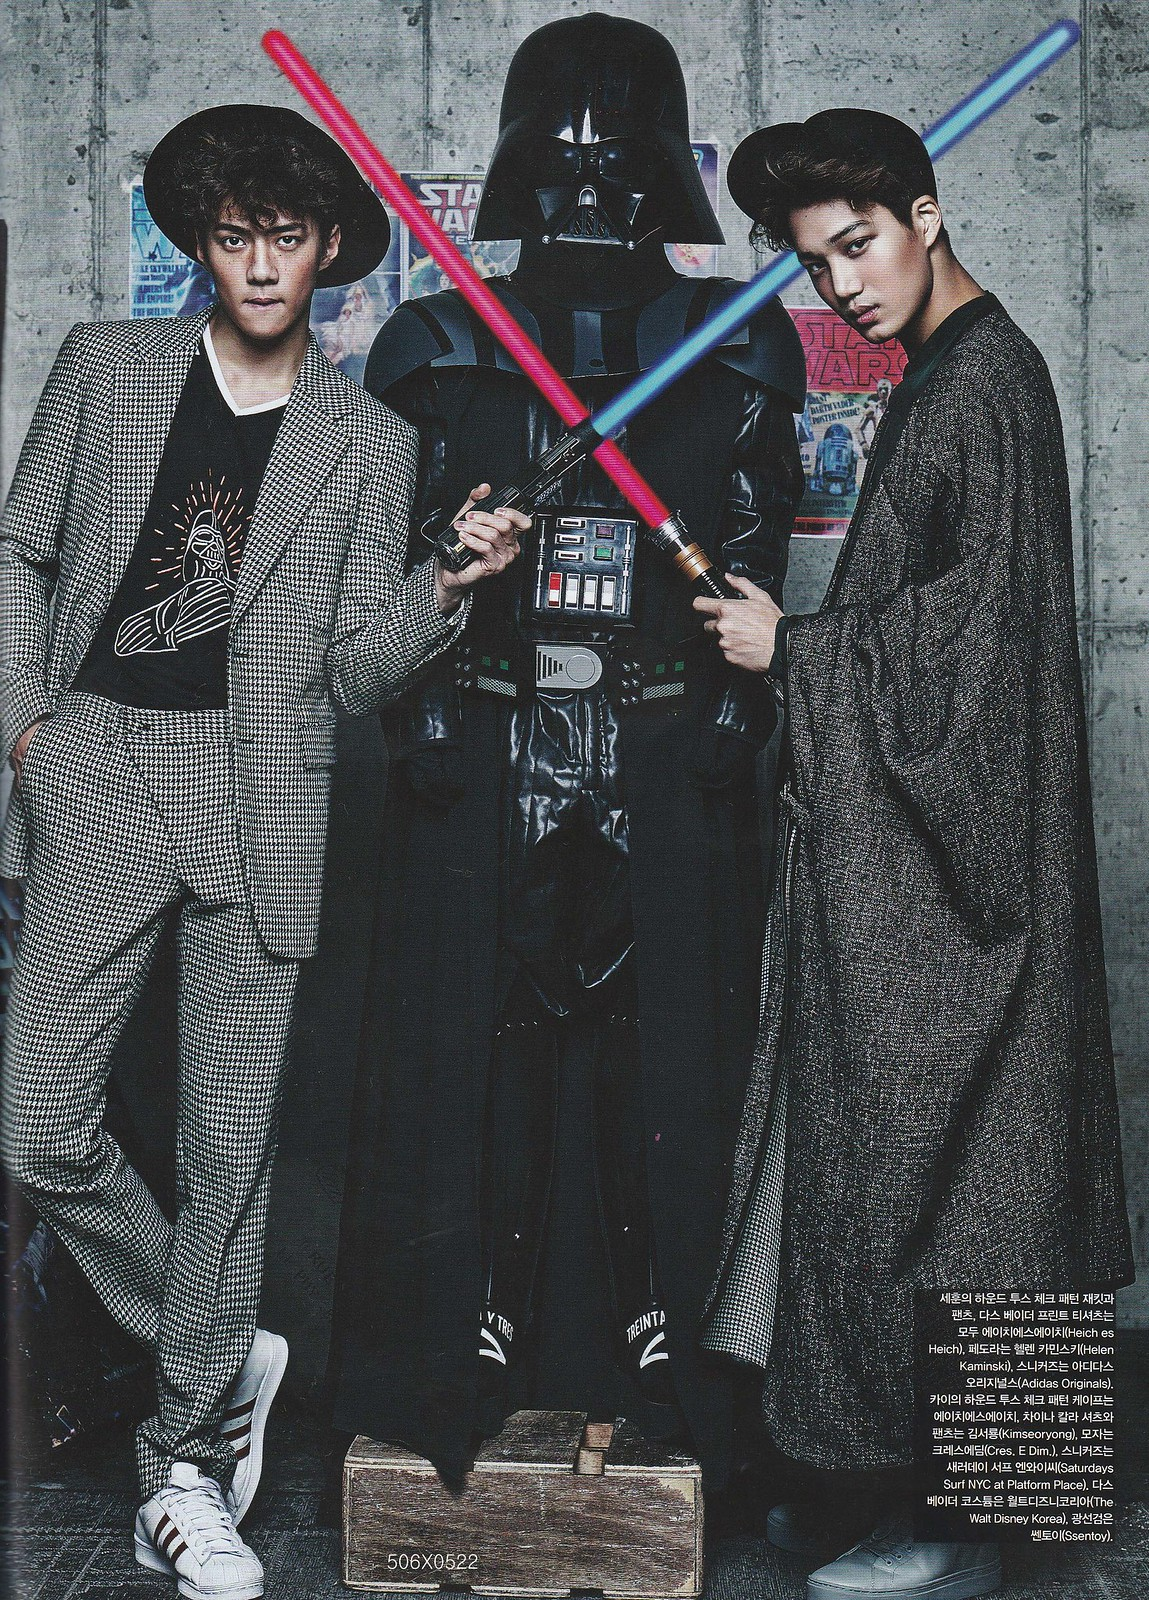 Chen Exo 2019 >> More pictures from the Exo+Star Wars photoshoot - OMONA